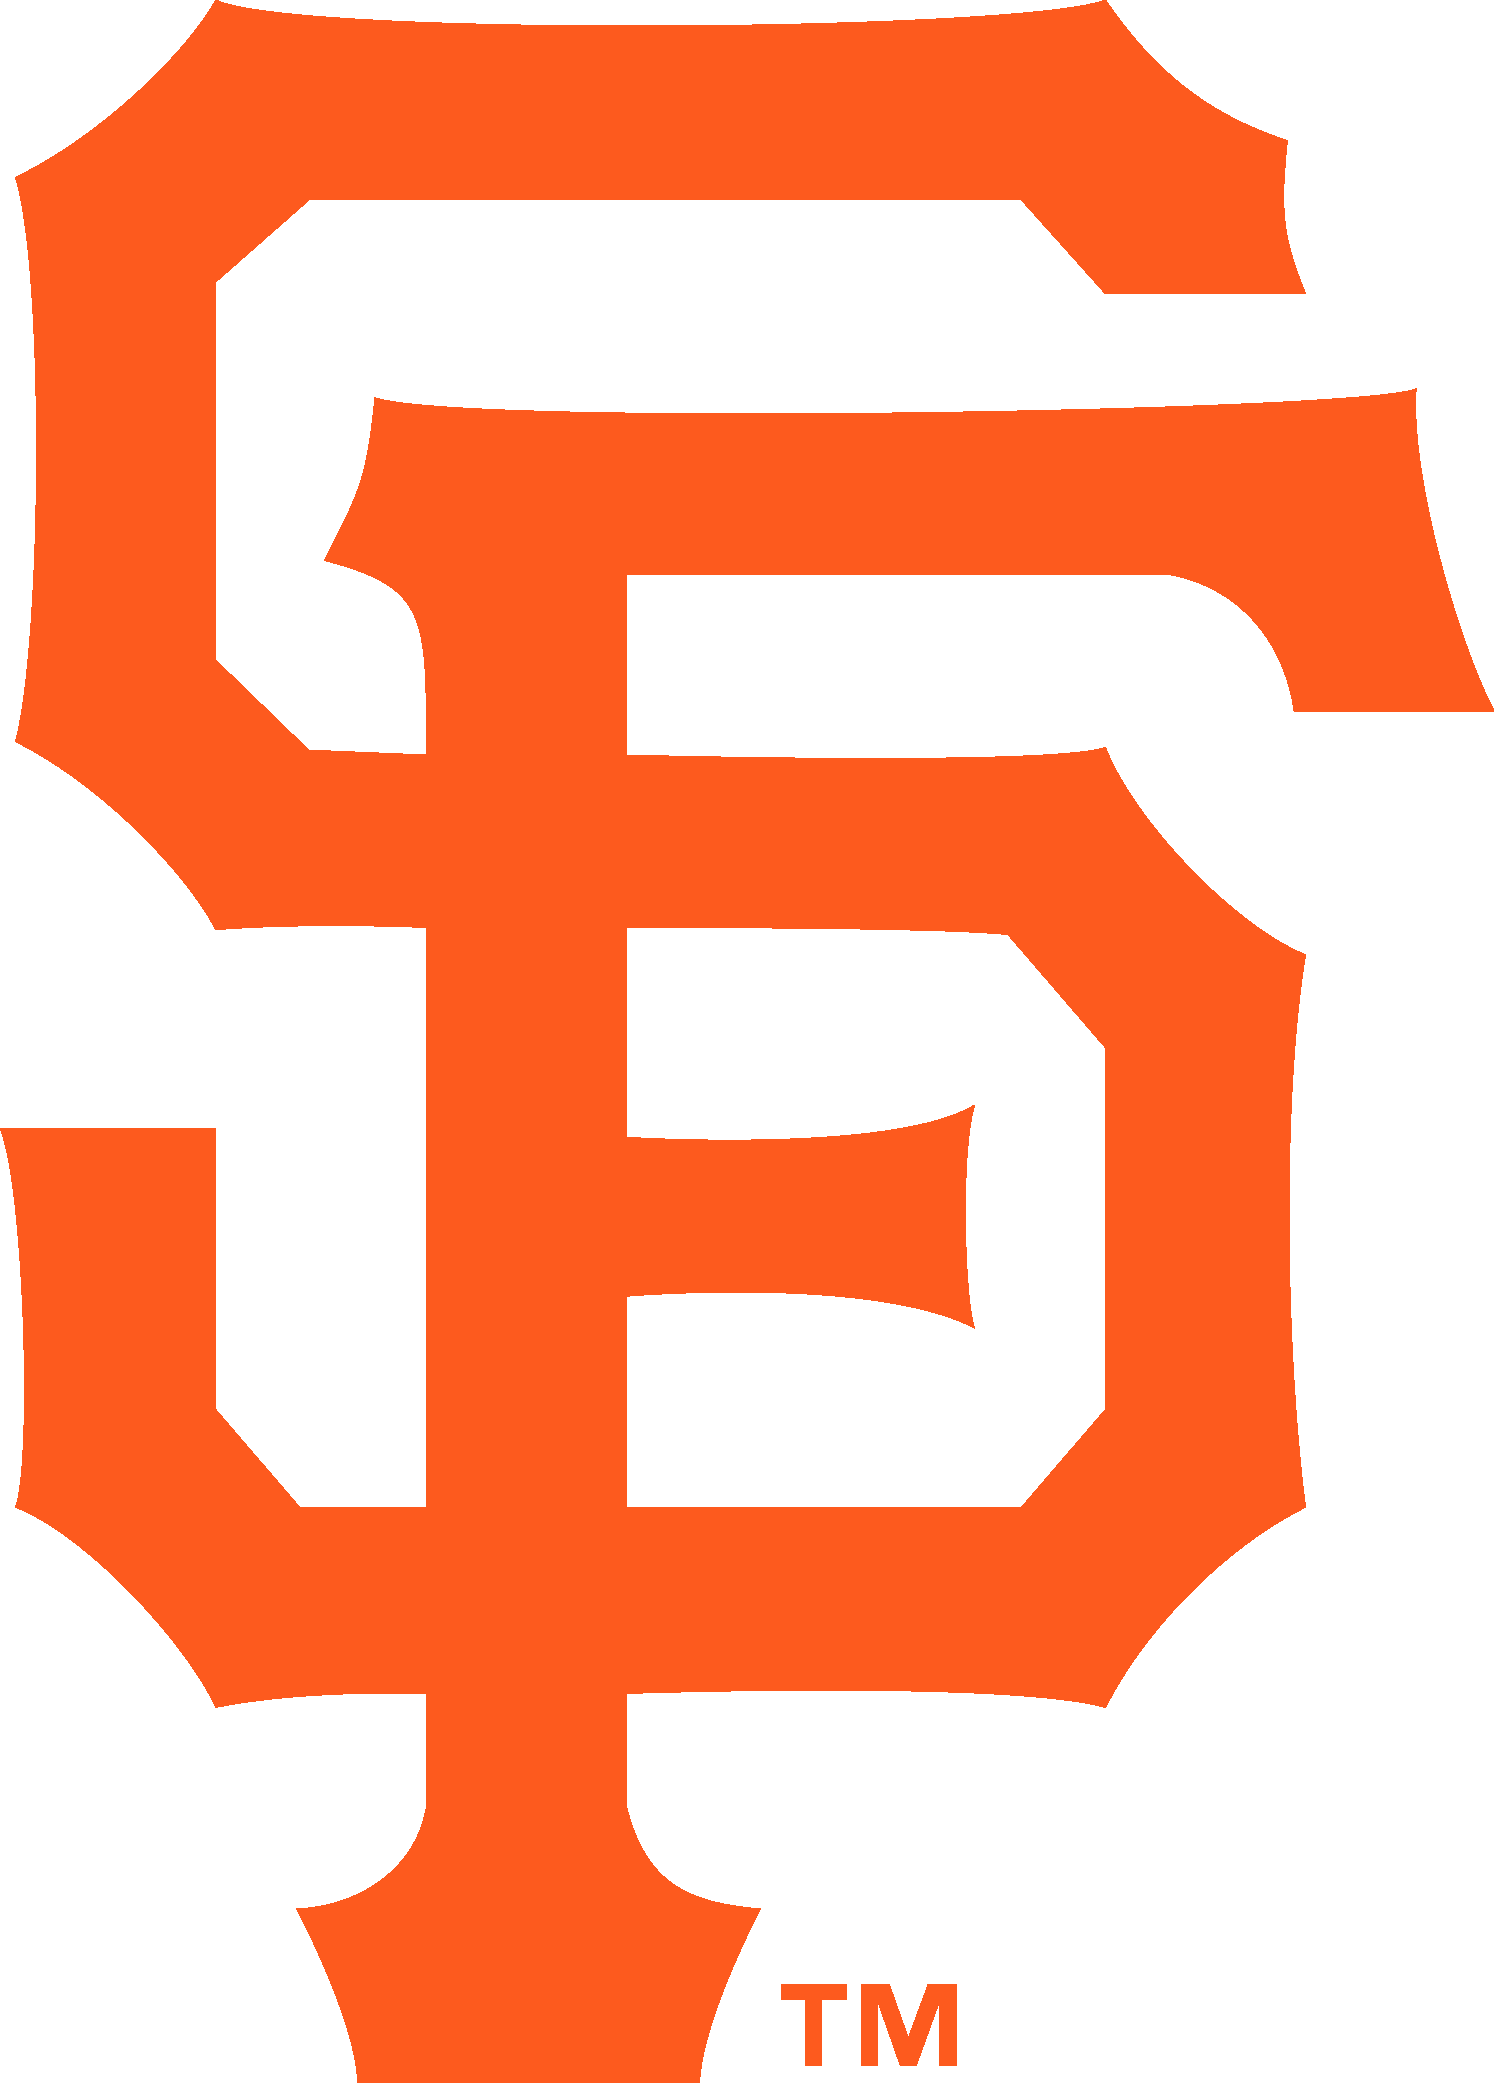 San Francisco Giants Logo Png.